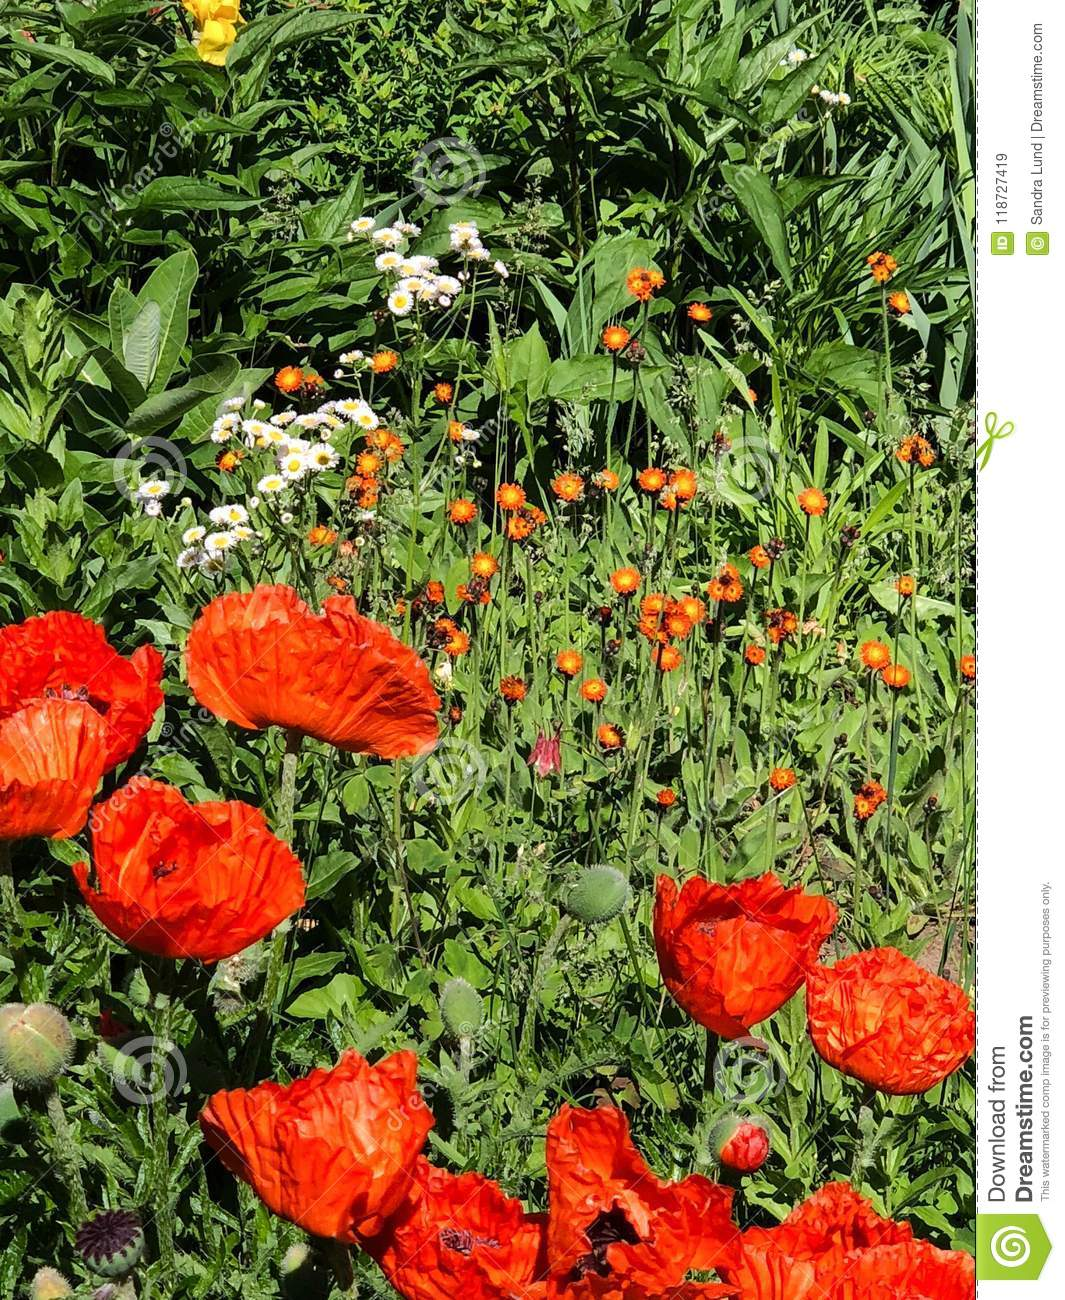 Field of different types of orange flowers stock image image of download field of different types of orange flowers stock image image of garden carpet izmirmasajfo